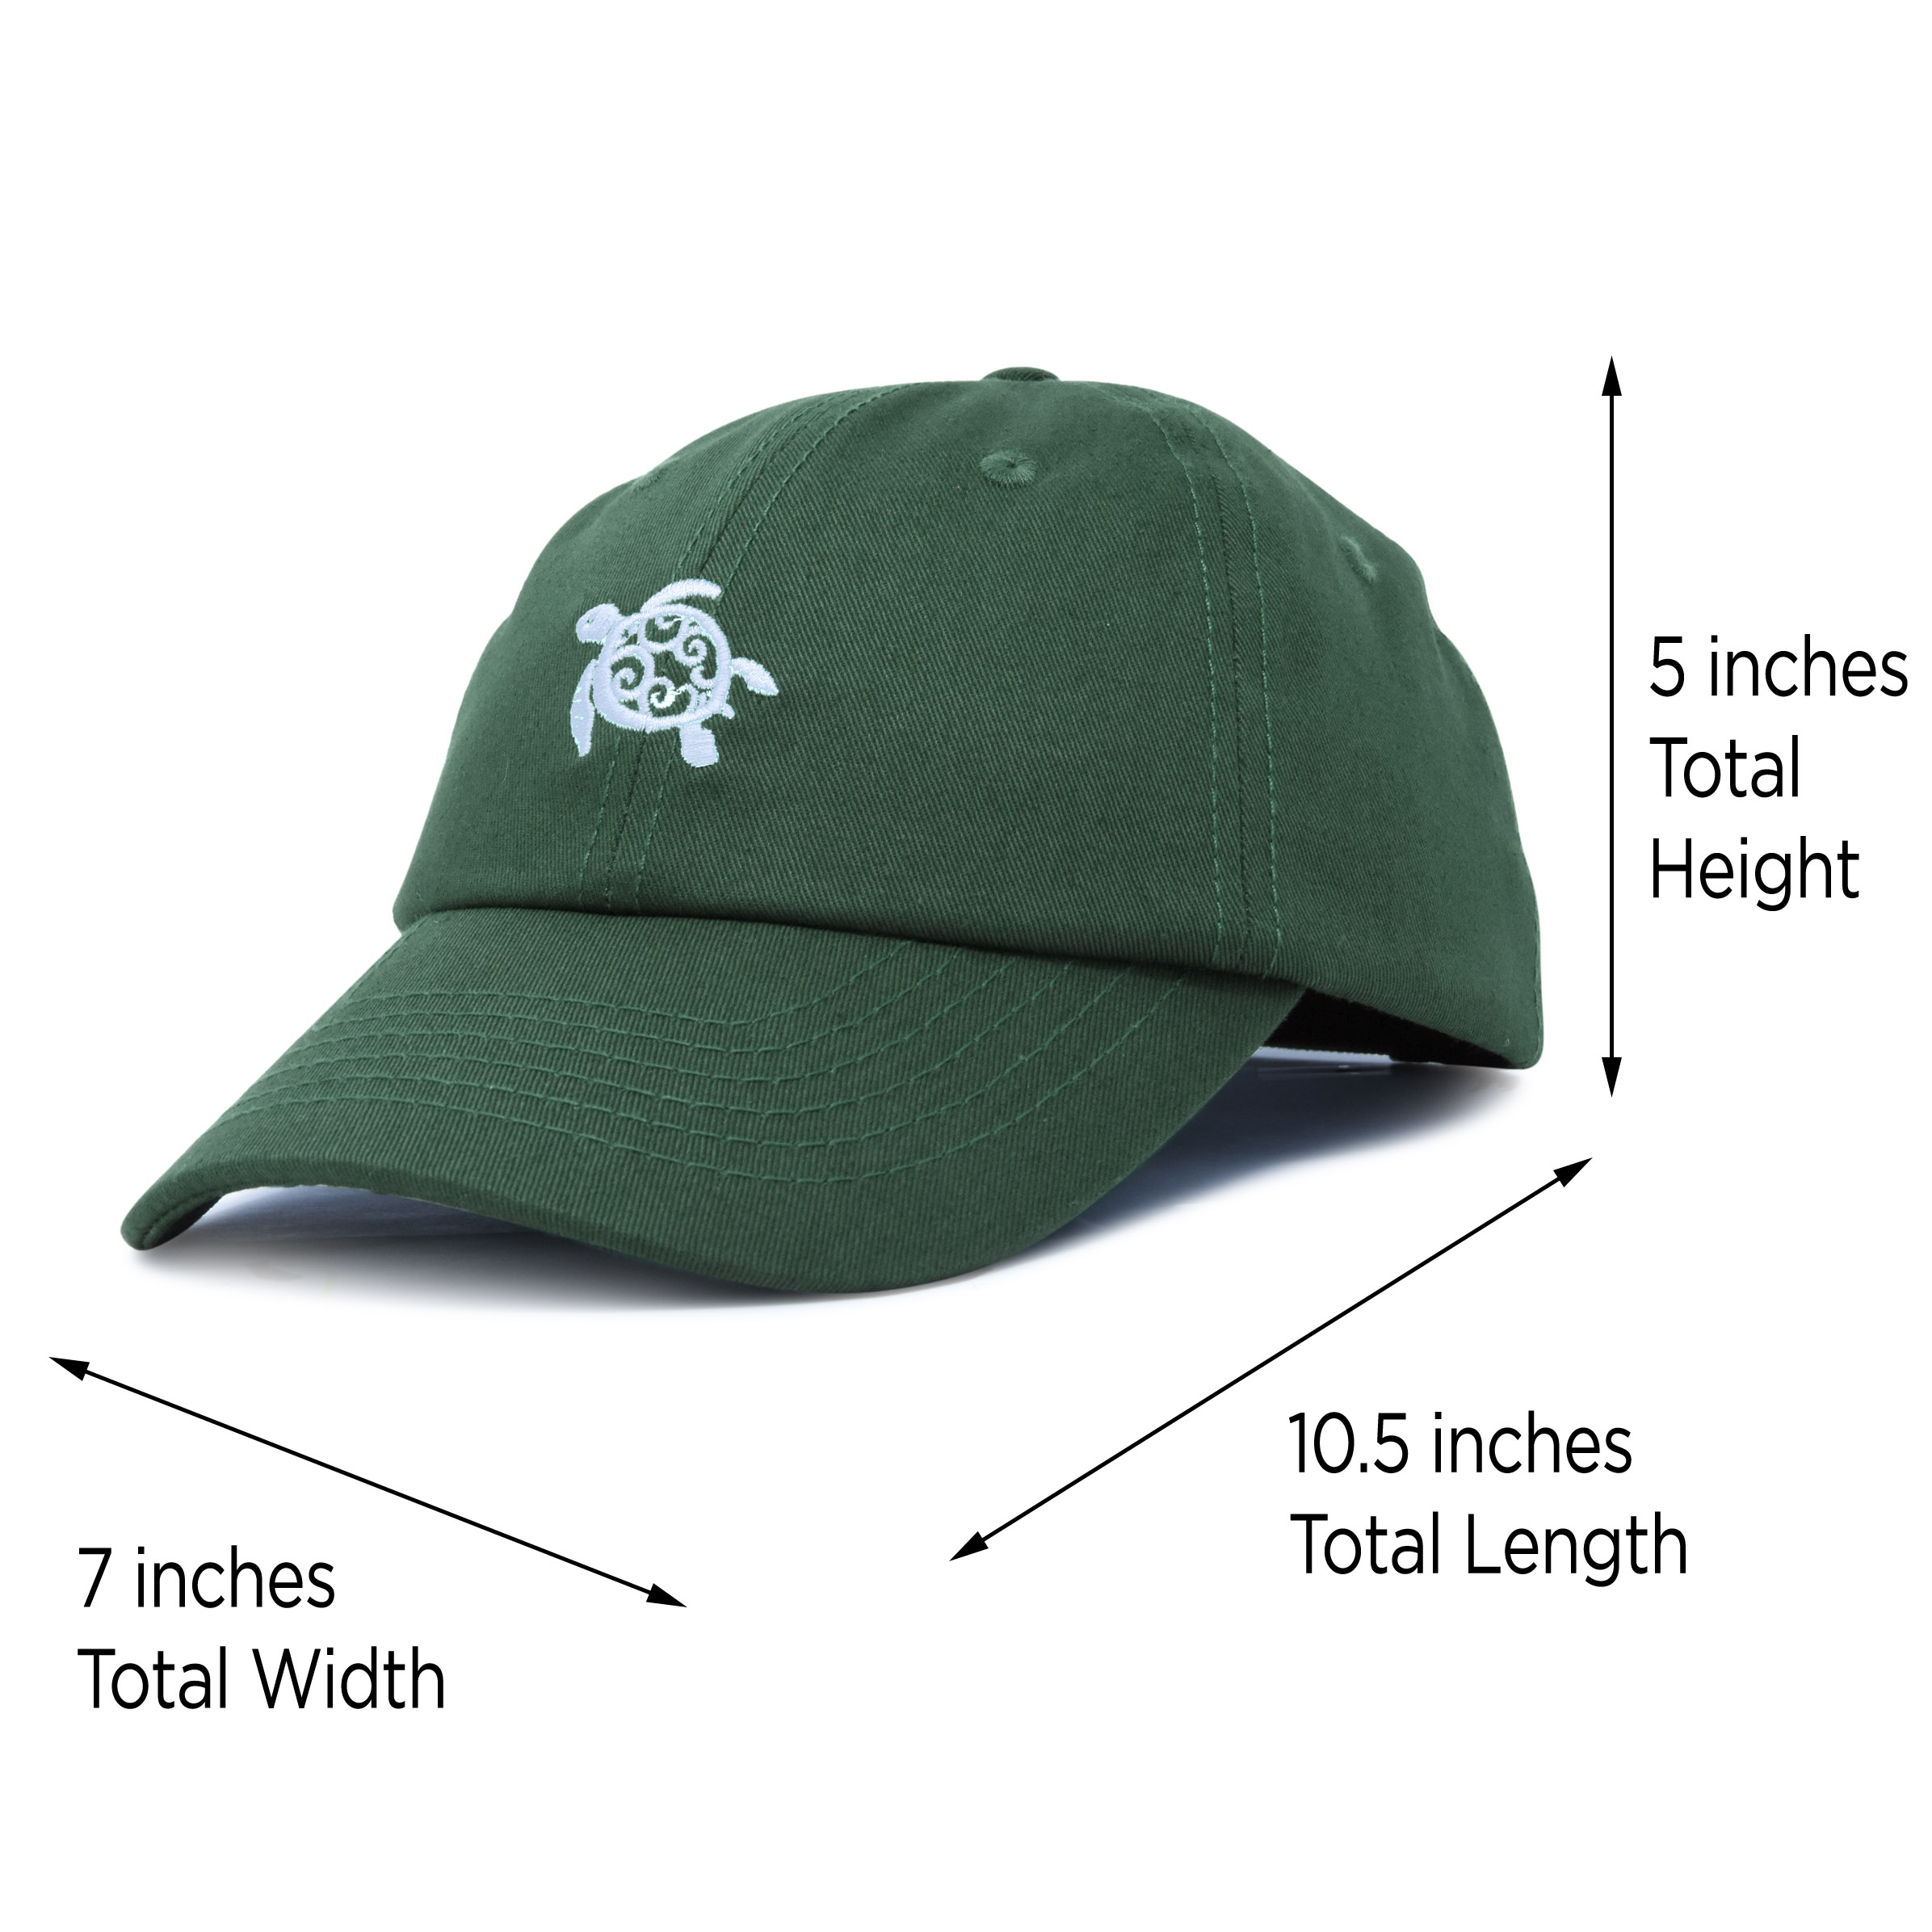 I Love Sea Turtles Trucker Hat Adjustable Outdoors